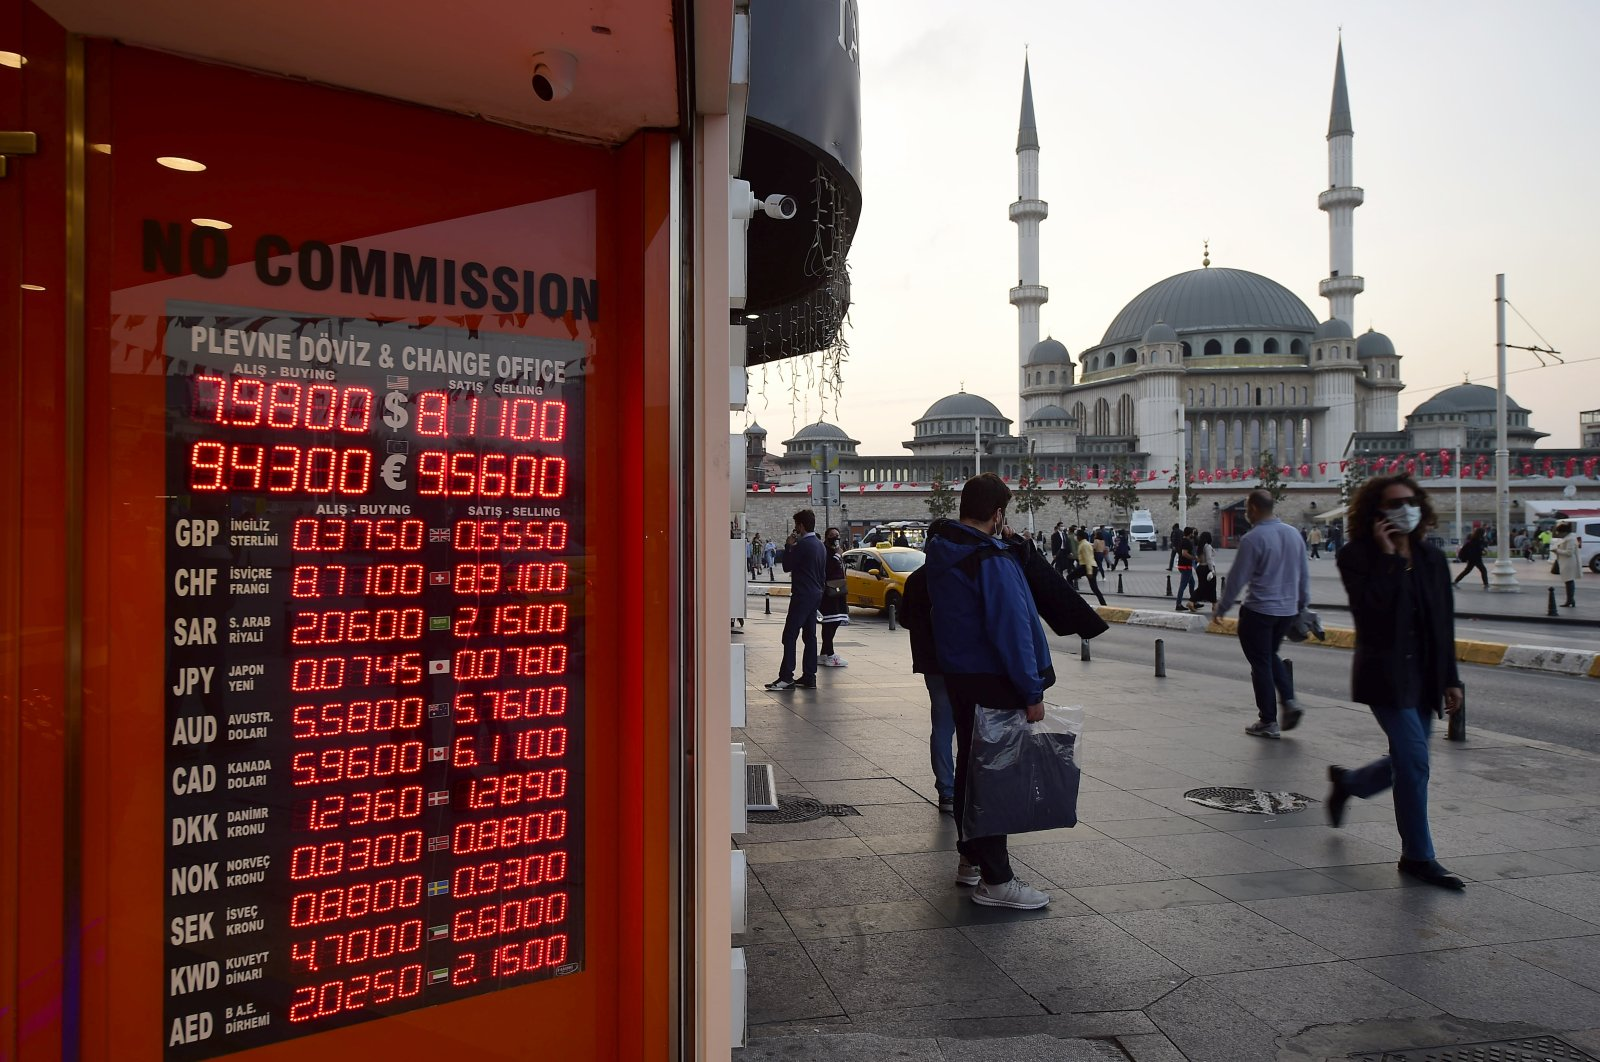 People stand outside an exchange office in the landmark Taksim Square, in Istanbul, Turkey, Oct. 26, 2020. (AP Photo)